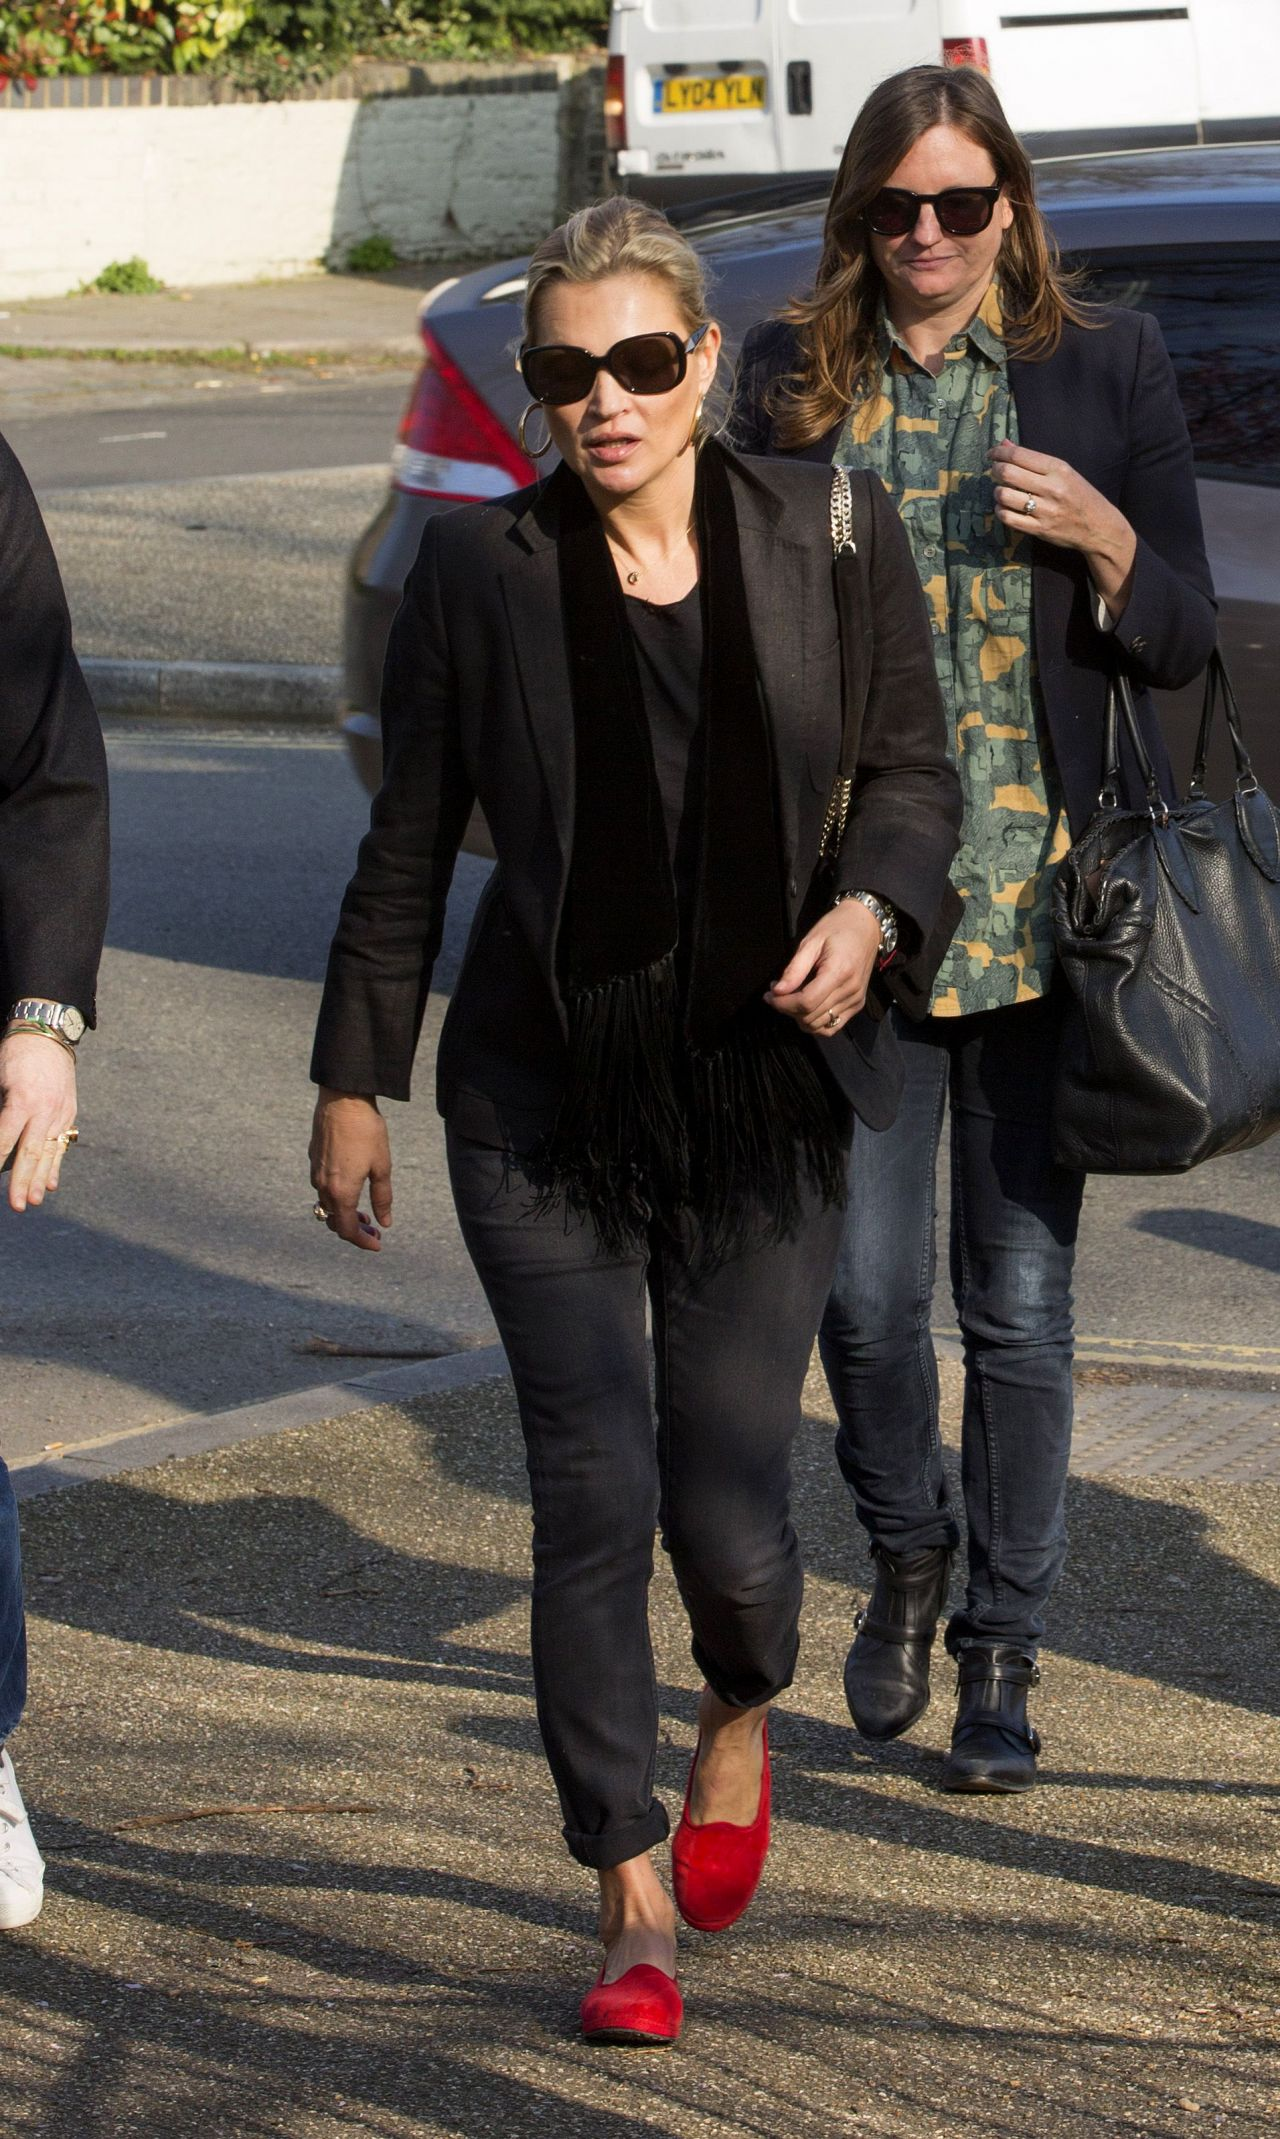 kate moss casual style out in london 327 2017